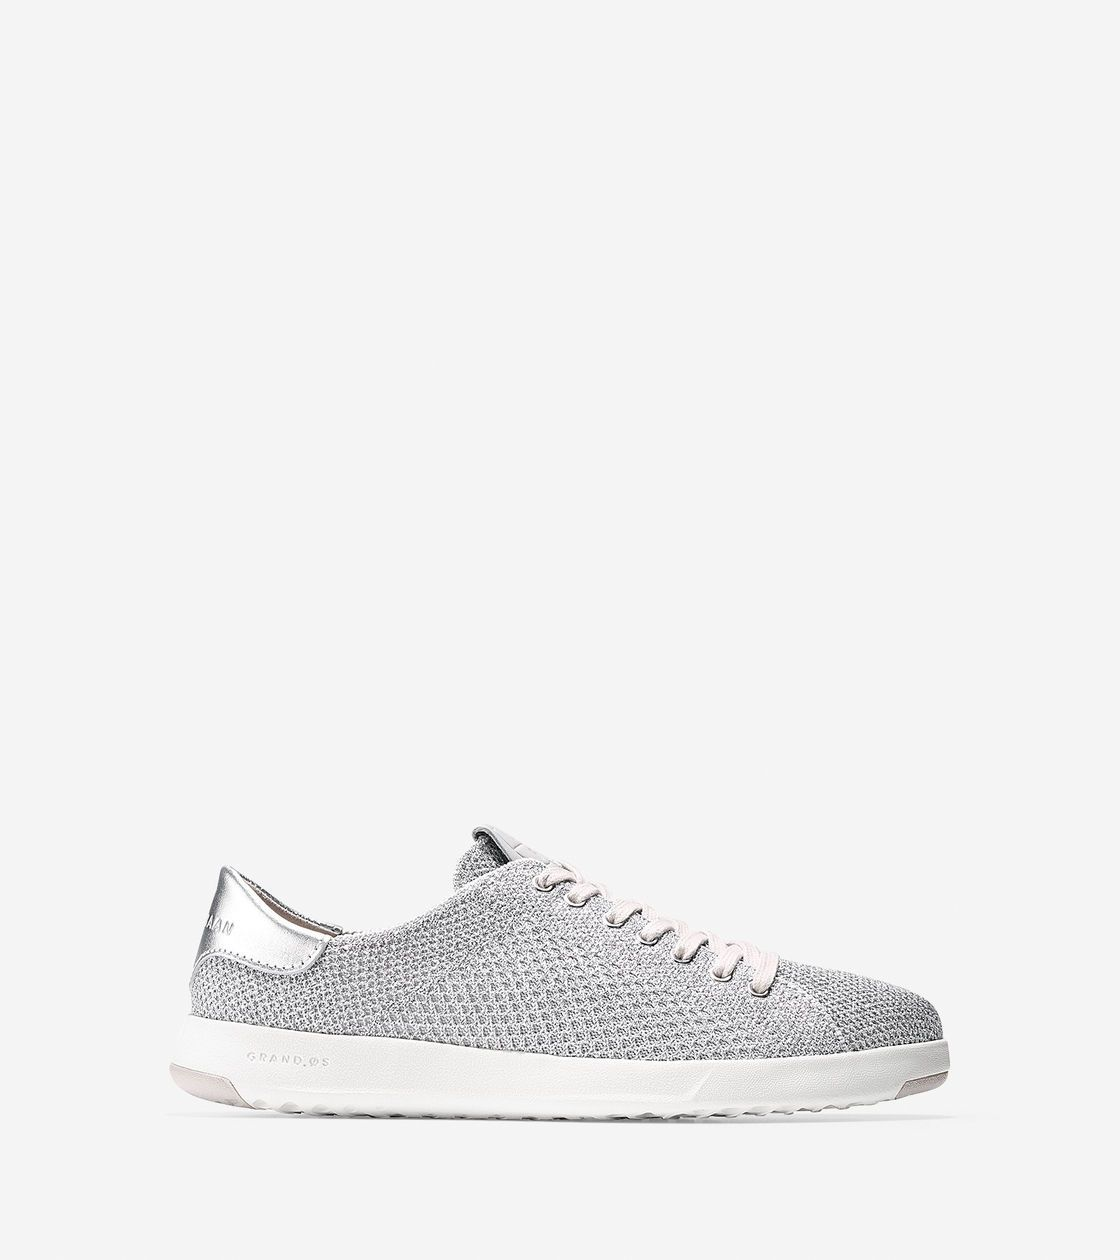 9551d2847caa Sneakers   Women s GrandPrø Tennis Sneaker with Stitchlite™